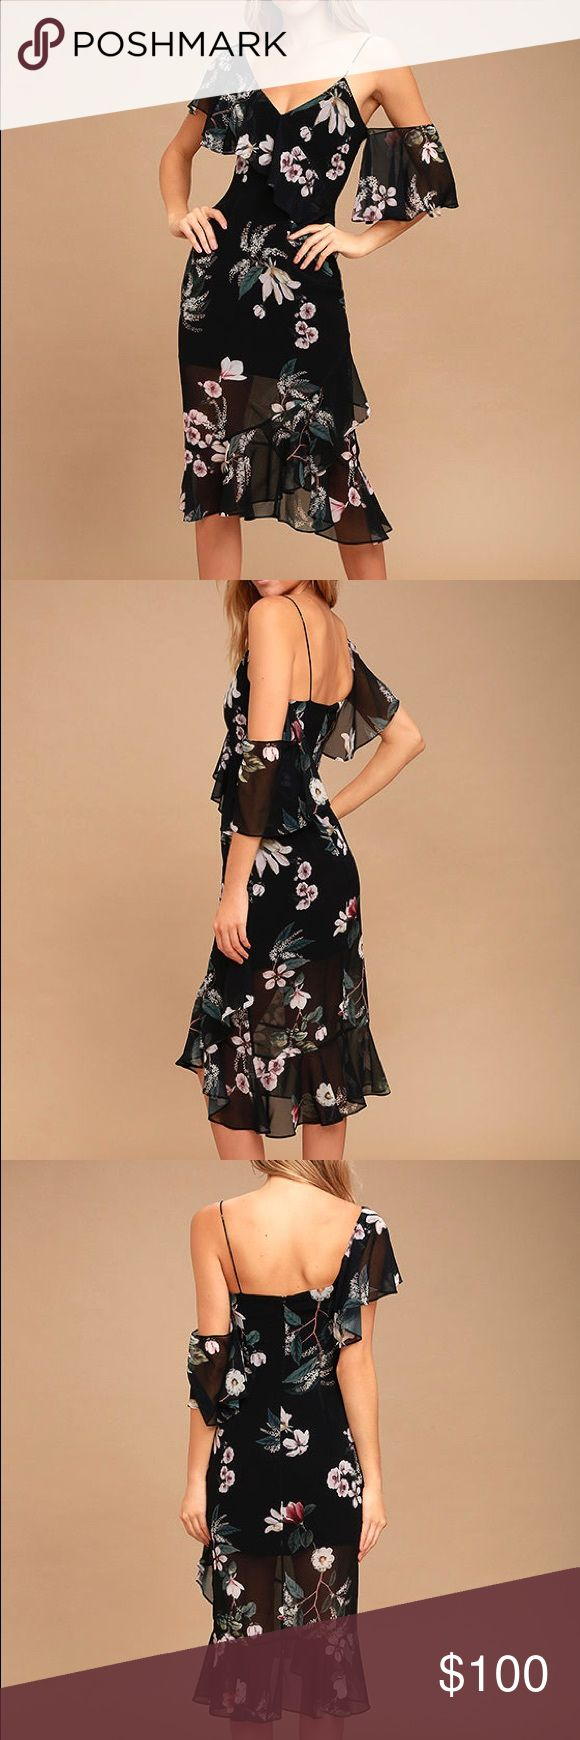 Keepsake Cosmic Girl Black Floral Print Midi Dress Keepsake off the shoulder asymmetrical bodice dress in a dark tropical print.  Never been worn, new with tags. KEEPSAKE the Label Dresses Midi